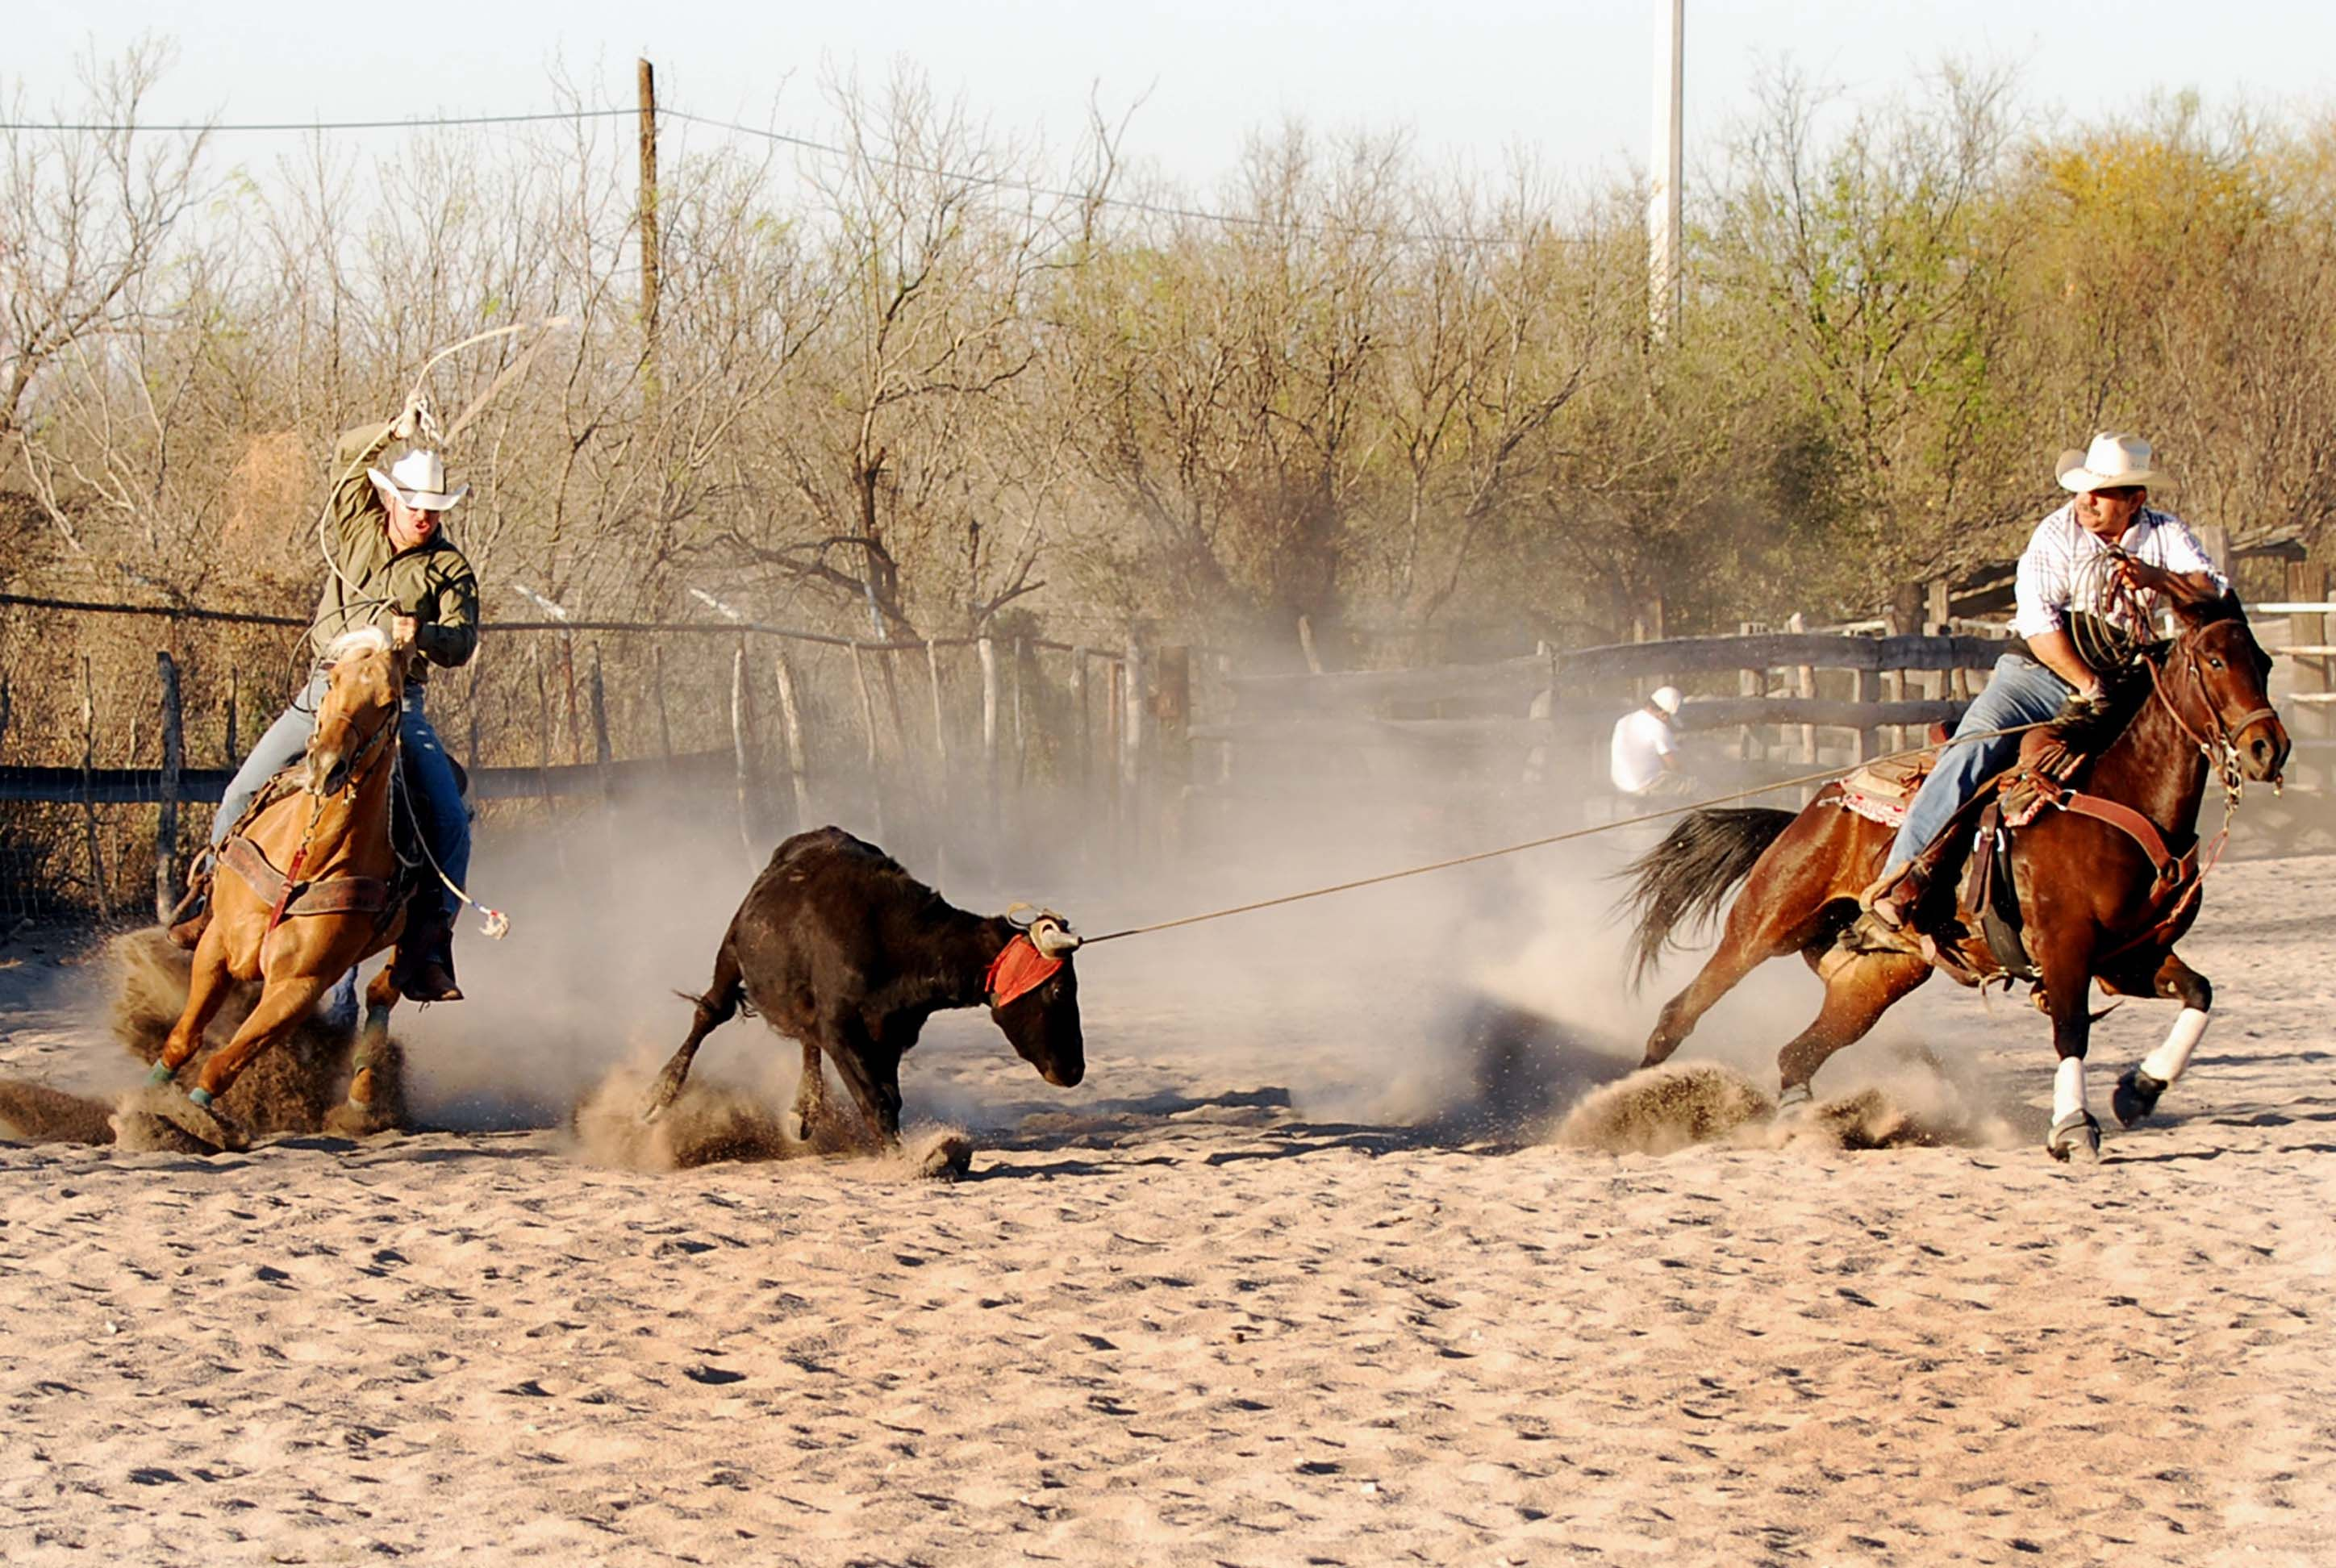 Swinging and delivery team roping